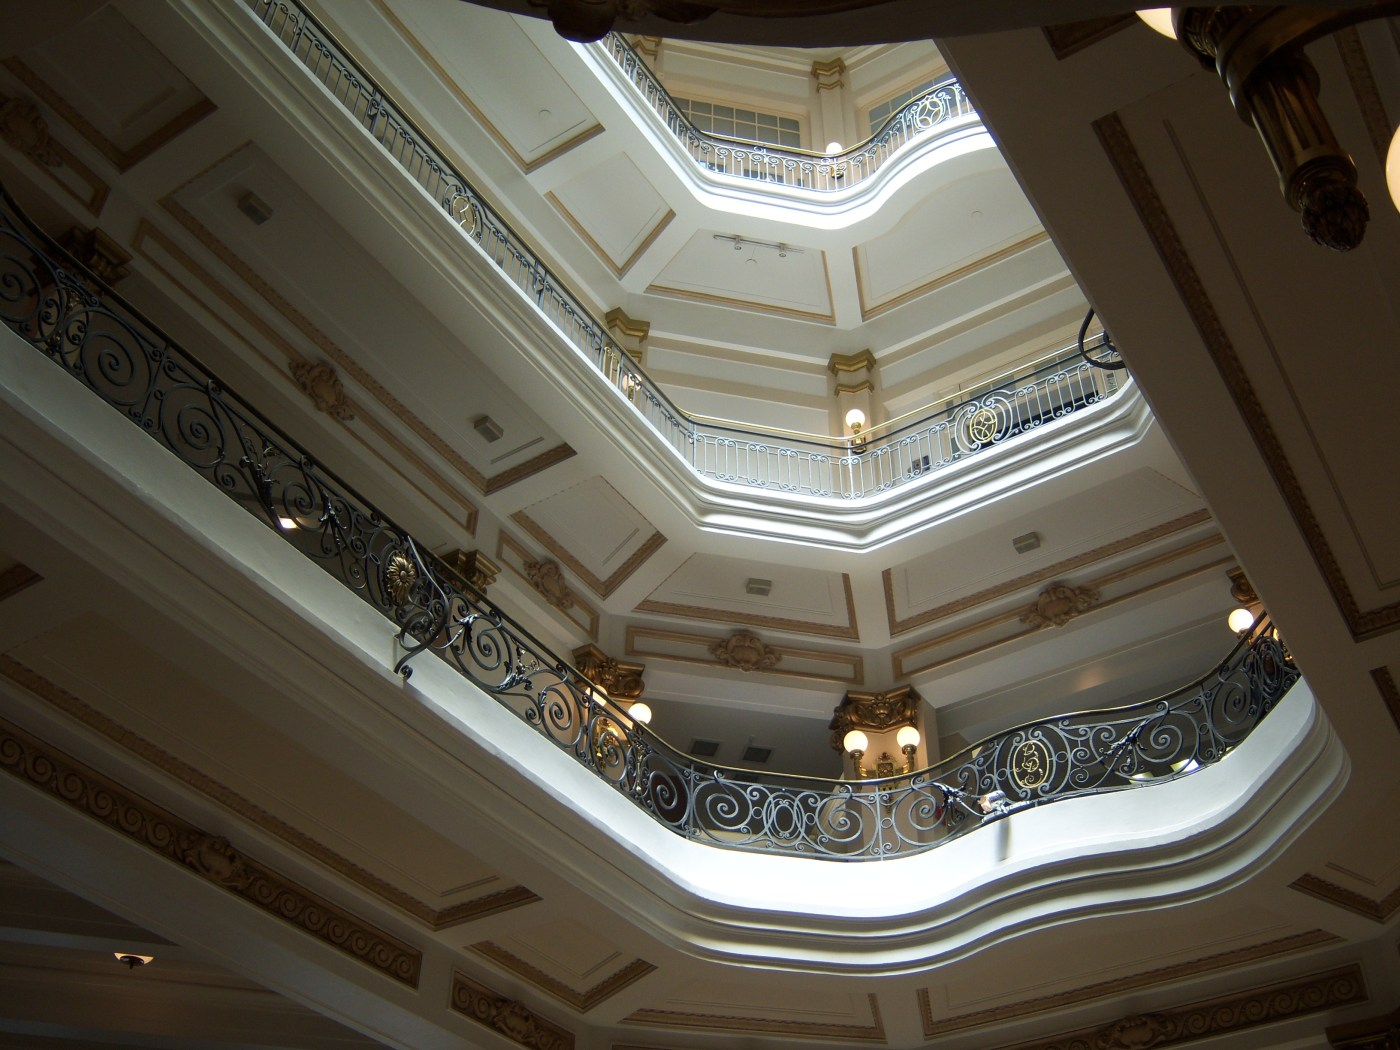 san-pablo--edificio-interior-skylight-251618.jpg